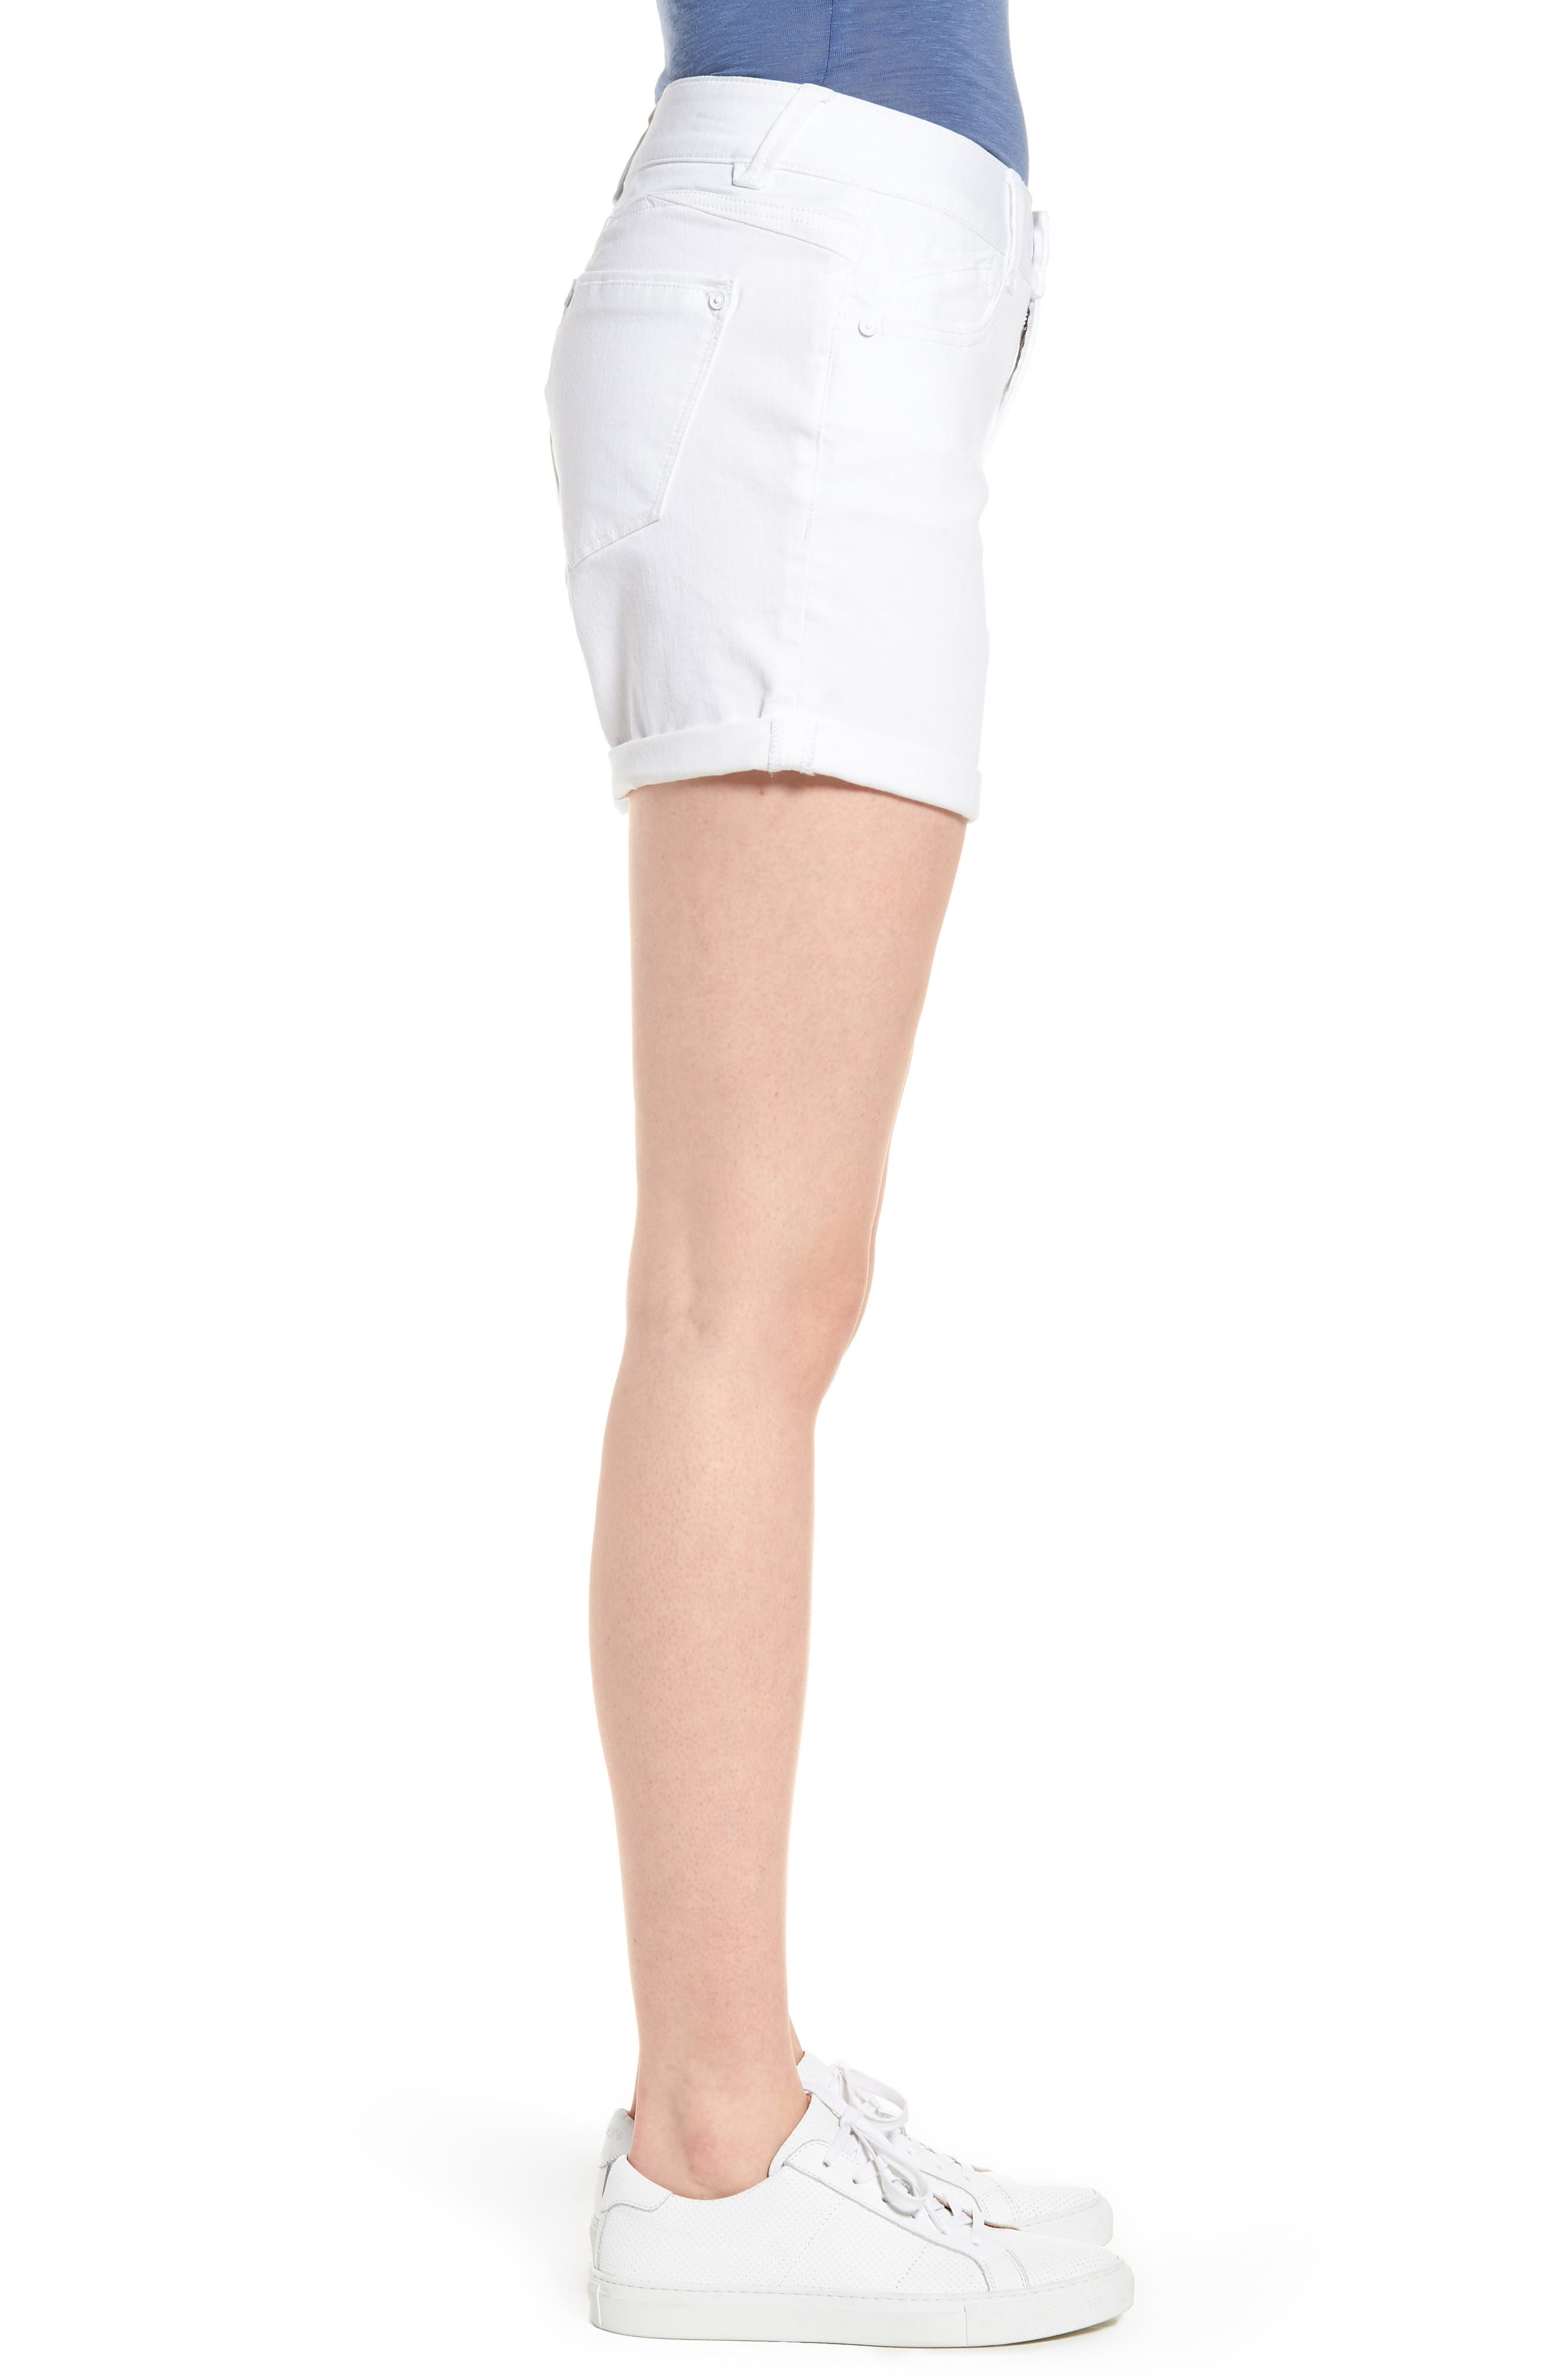 Ab-solution Cuffed White Shorts,                             Alternate thumbnail 3, color,                             106